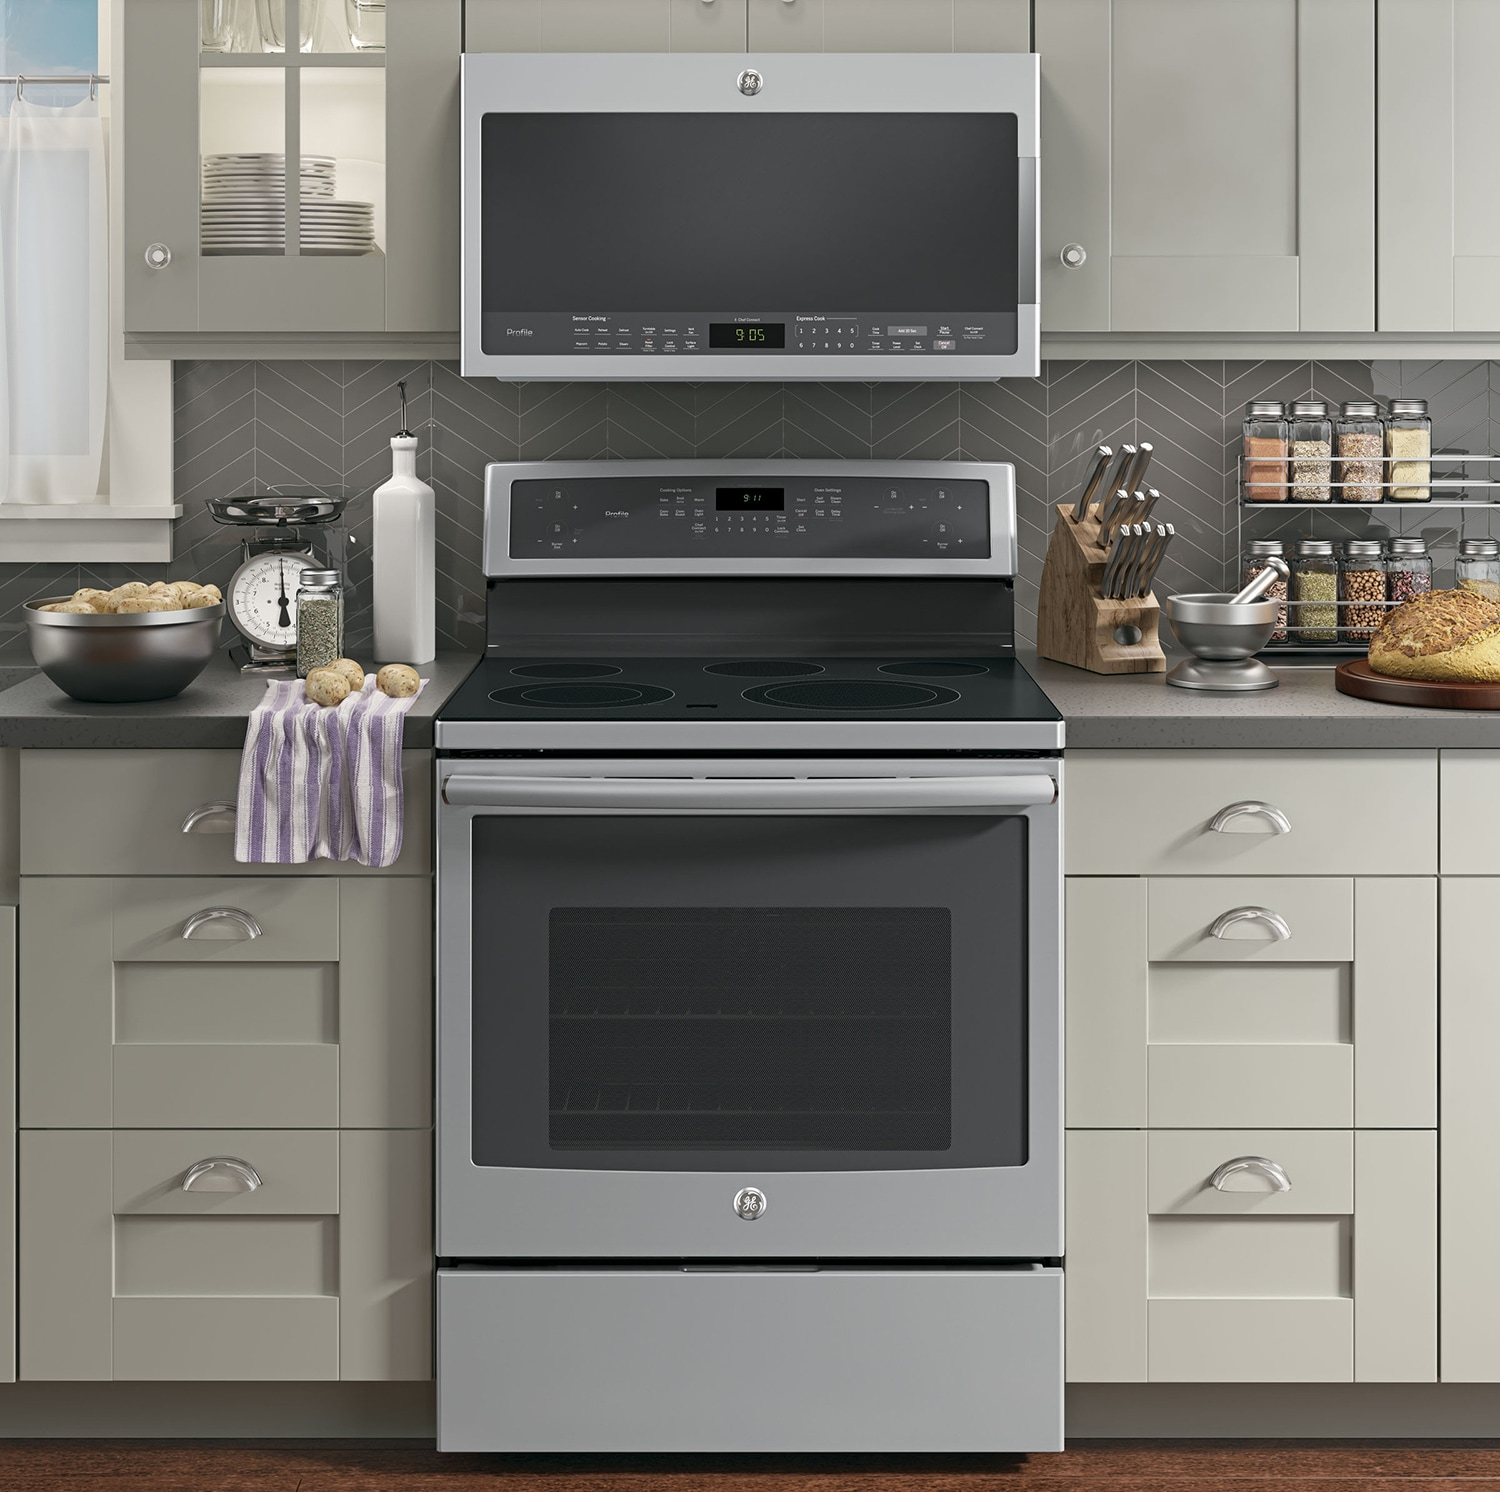 ge 2 1 cu ft over the range microwave pvm2188sjc the brick. Black Bedroom Furniture Sets. Home Design Ideas